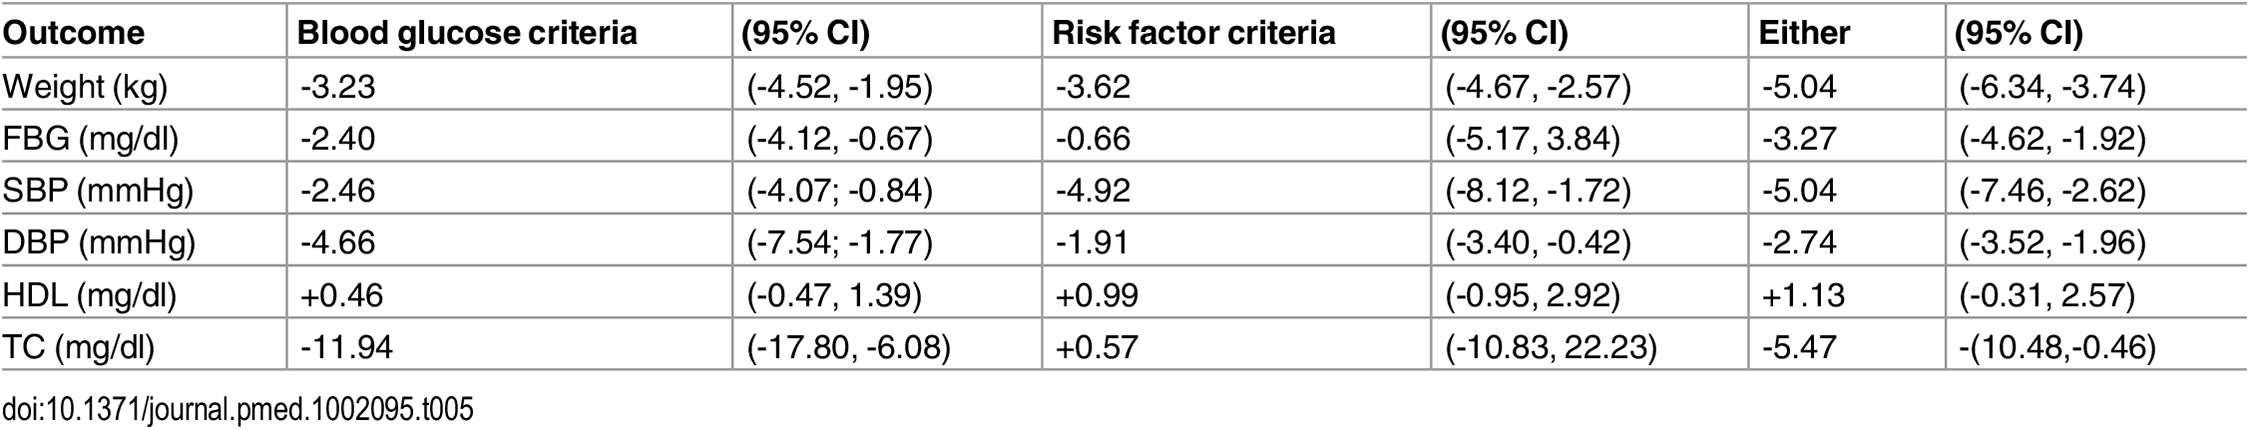 "Outcomes stratified by method used to determine ""high risk"" status."